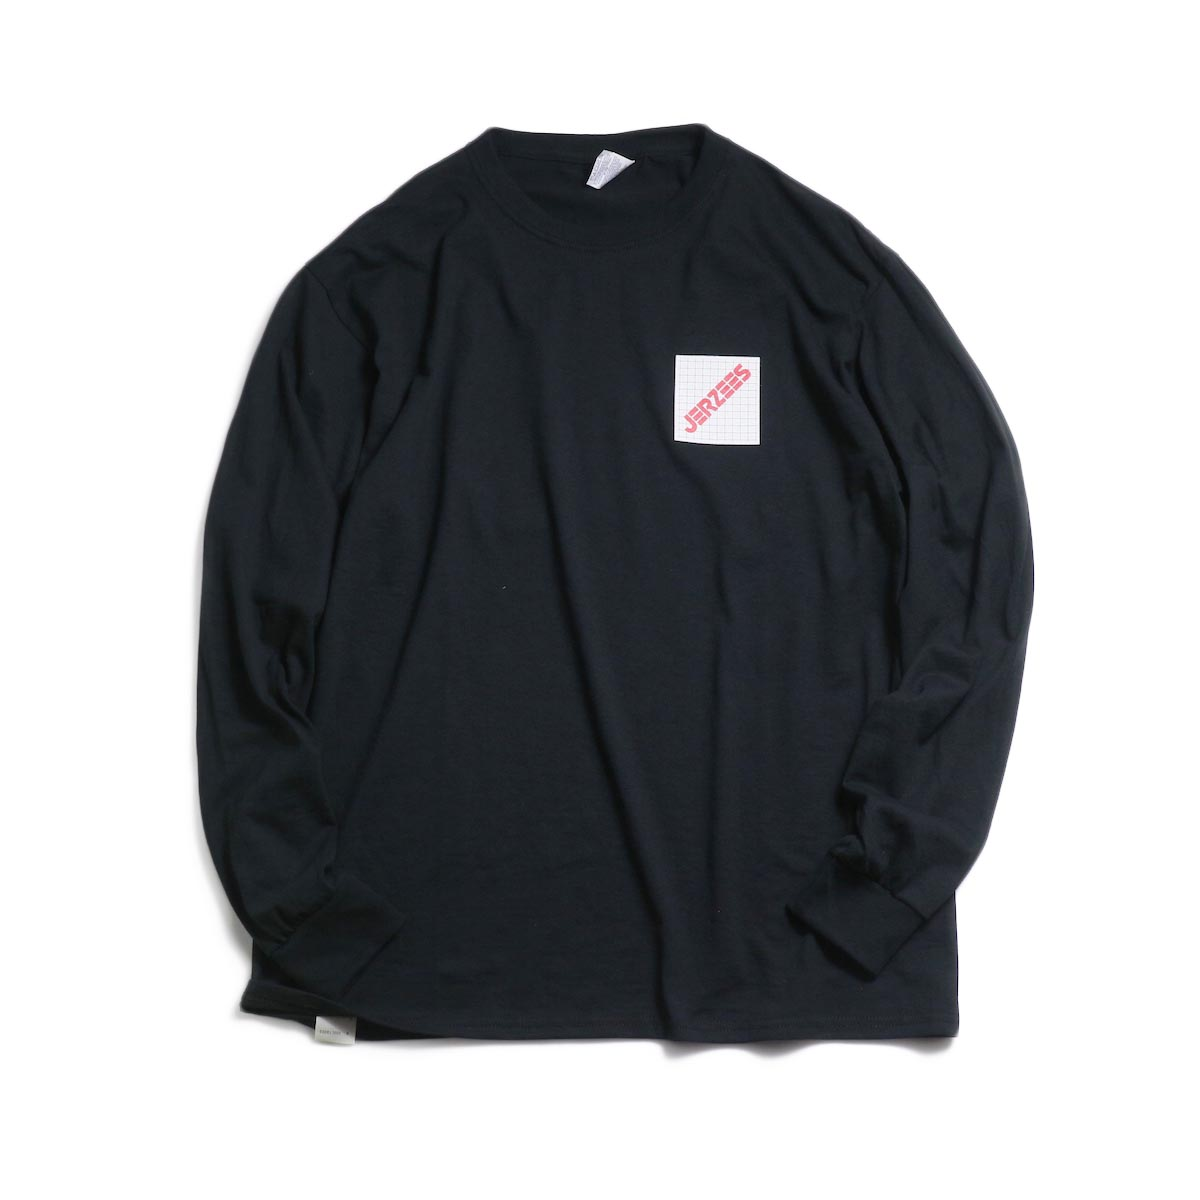 N.HOOLYWOOD × JERZEES  / 191-CS43-070 Long Sleeve Tee -Black